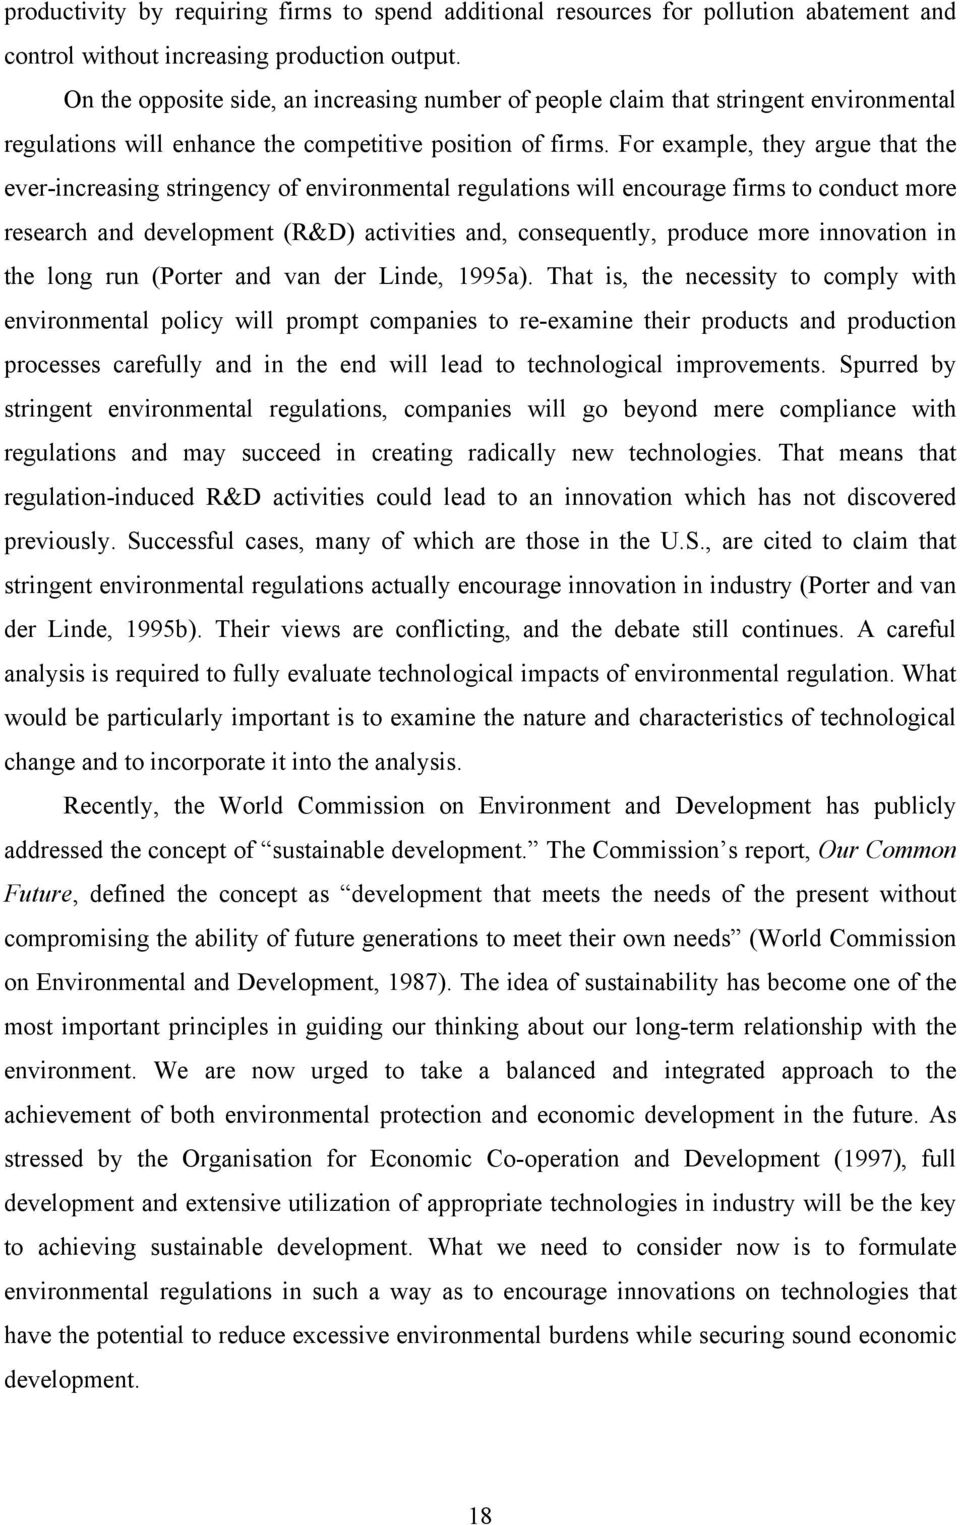 For example, they argue that the ever-increasing stringency of environmental regulations will encourage firms to conduct more research and development (R&D) activities and, consequently, produce more